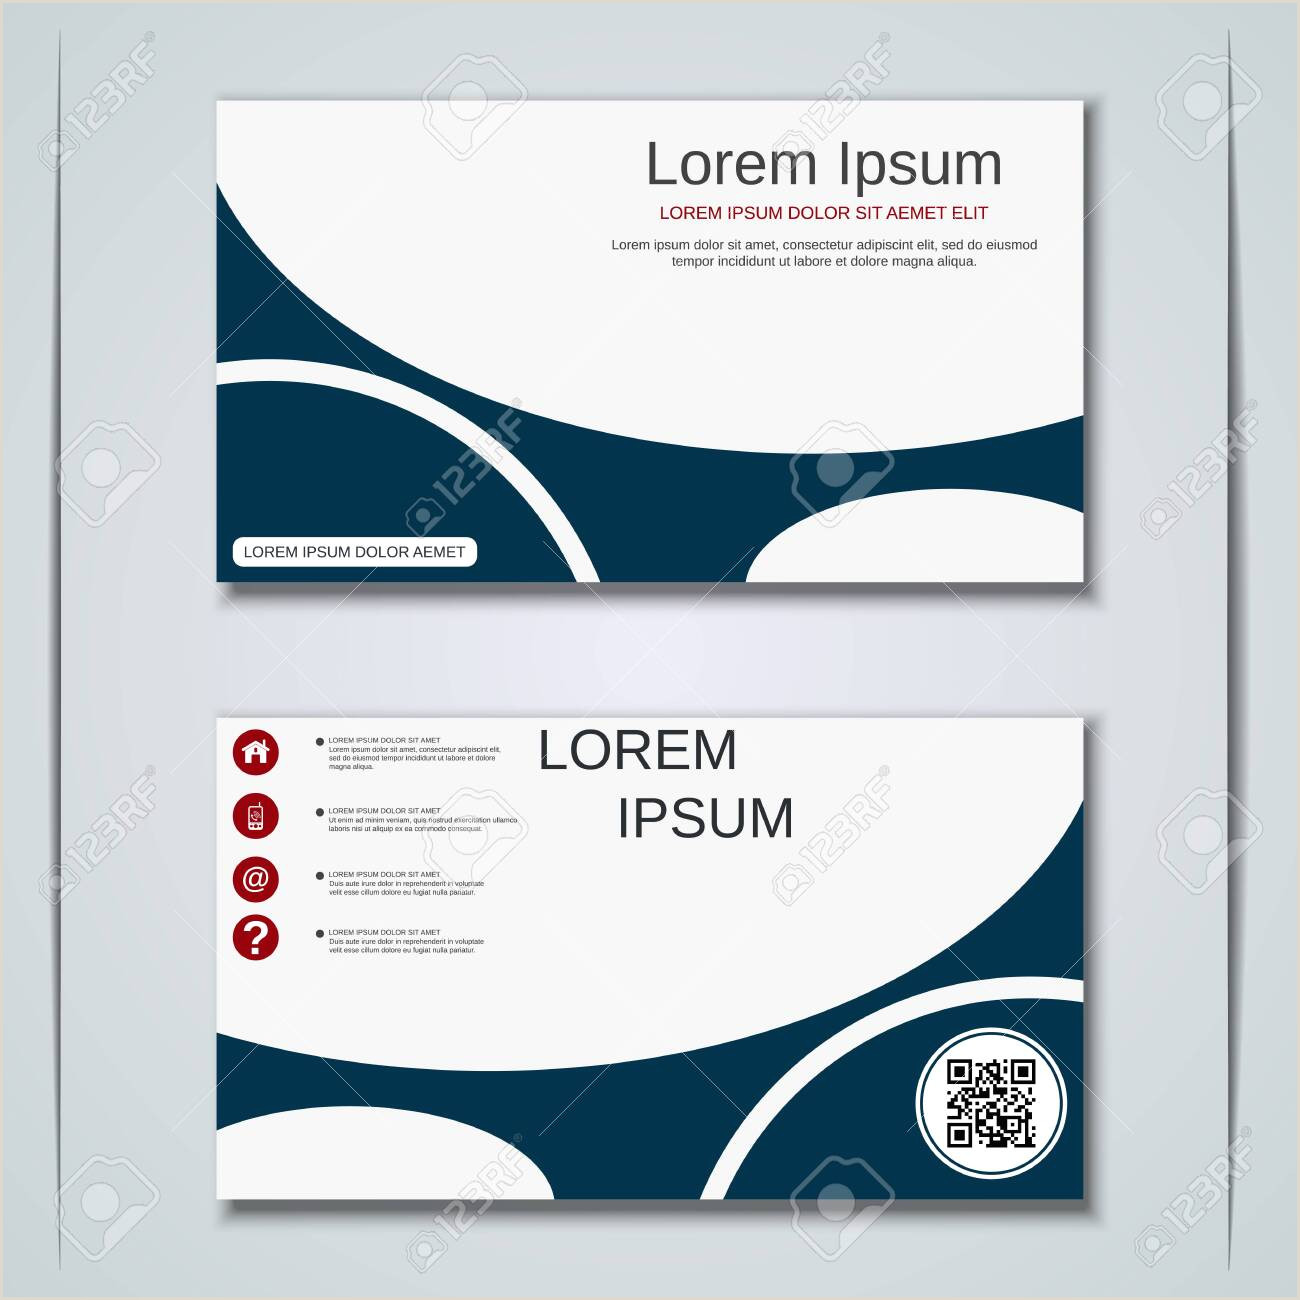 Unique Sticker Business Cards Modern Abstract Geometric Style Business Visiting Card Label